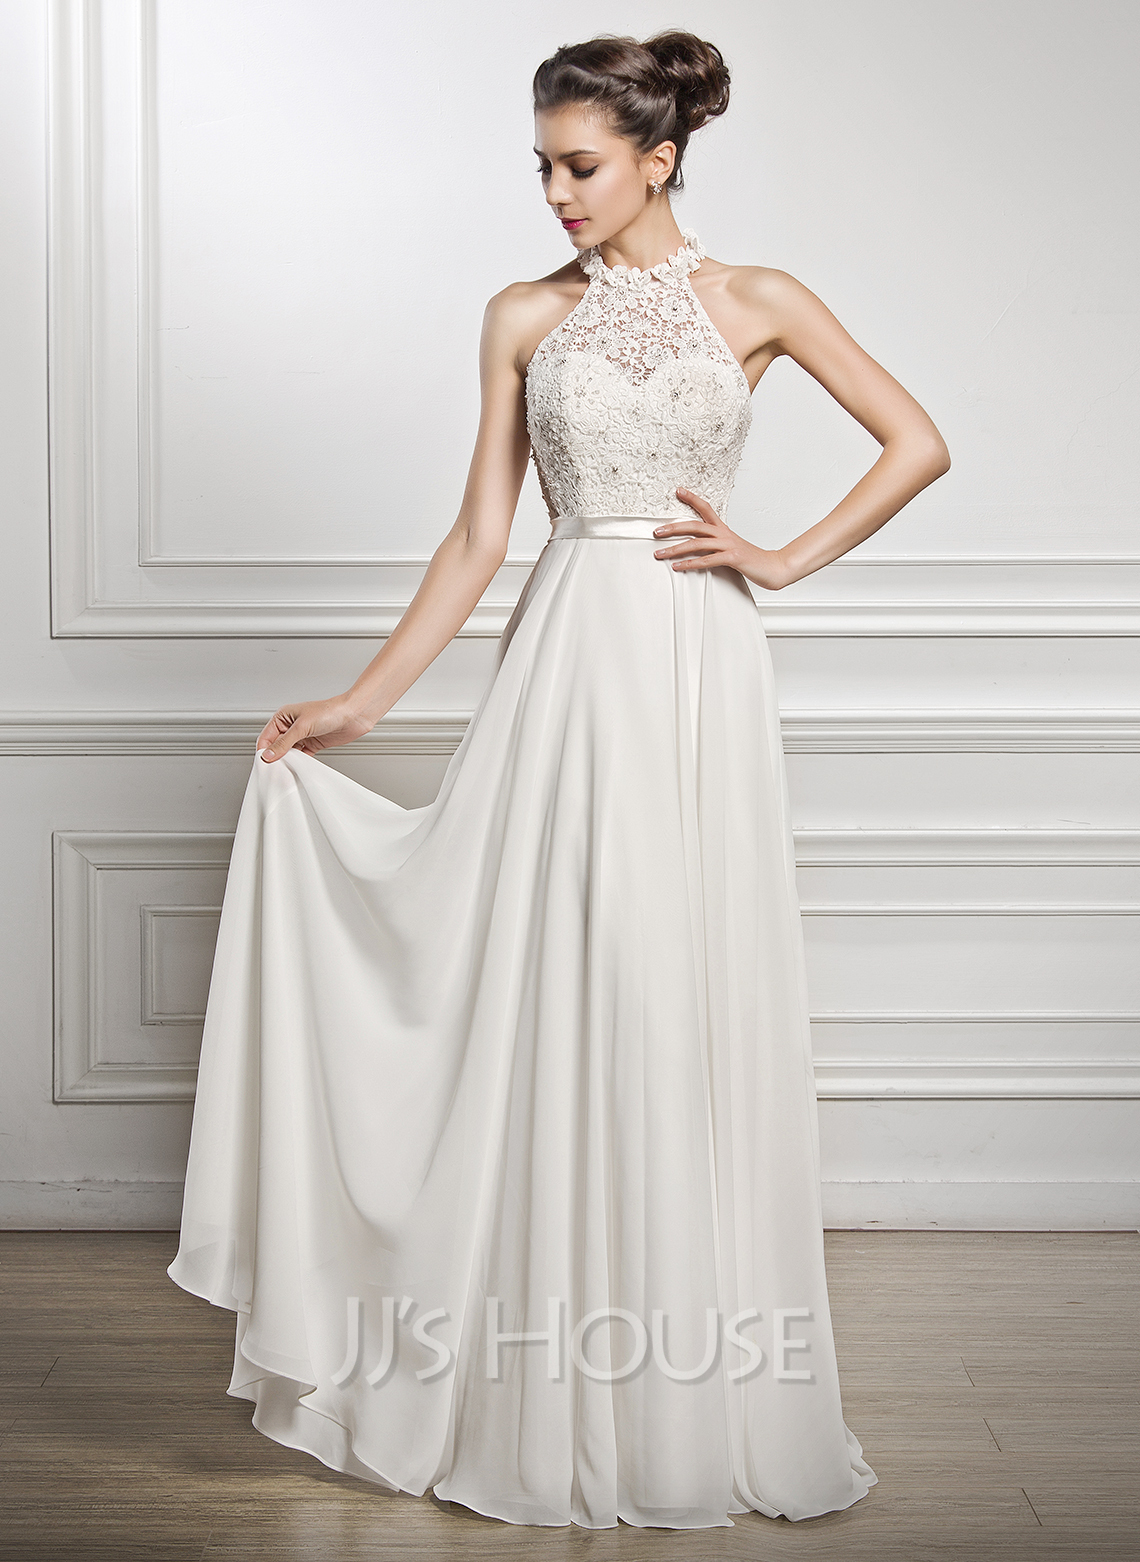 A Line Princess Scoop Neck Floor Length Chiffon Lace Wedding Dress With Beading Sequins g jjshouse wedding dress Home Wedding Dresses Loading zoom